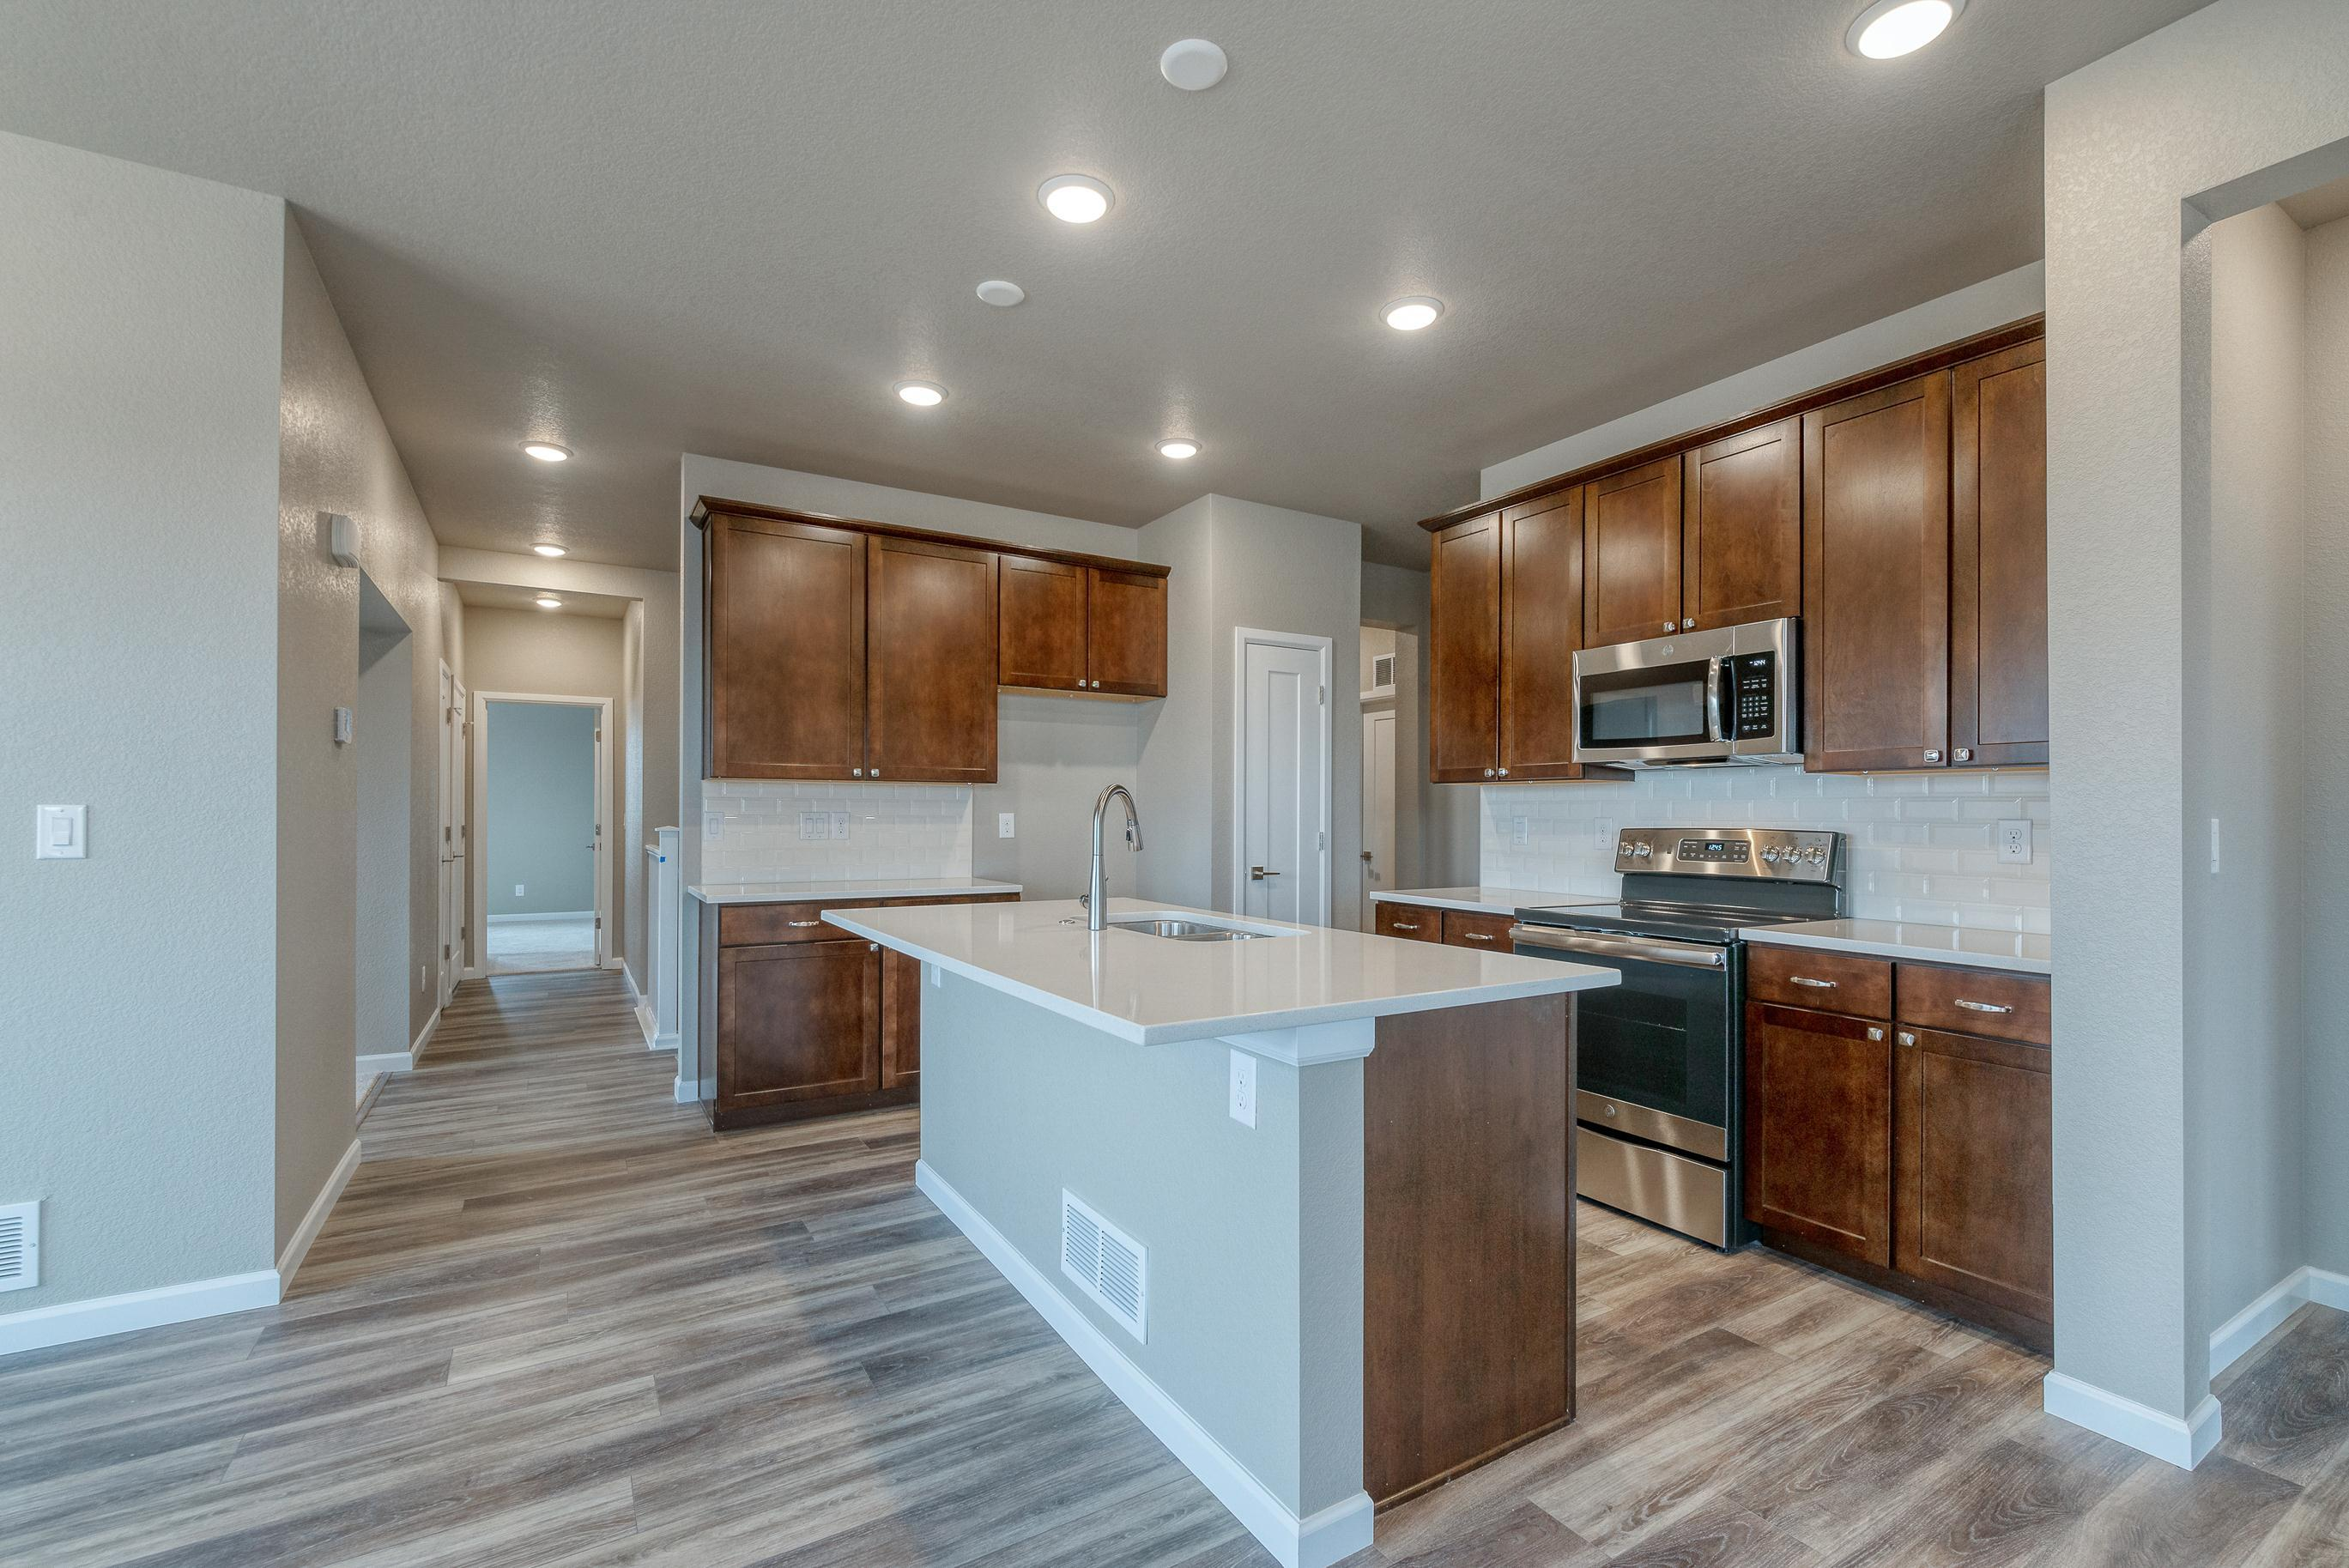 Kitchen featured in The Dupont By JM Weston Homes in Denver, CO